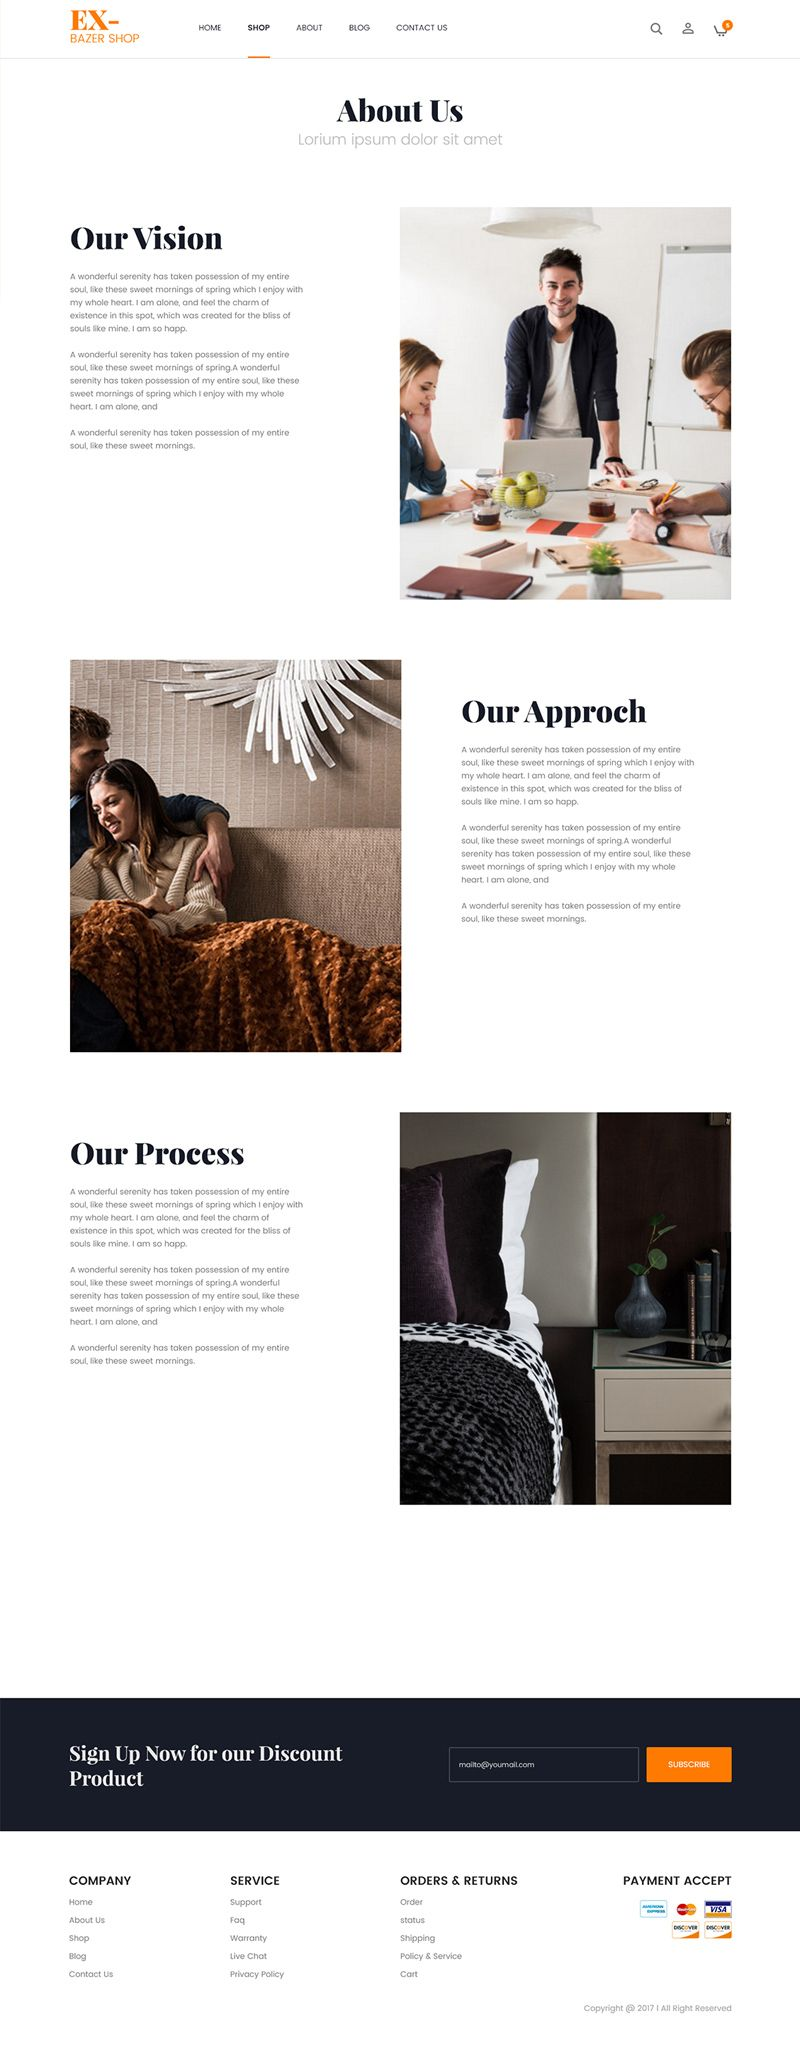 About Us Page Template For An Ecommerce Website About Us Page Design Website Template Design Website Design Layout